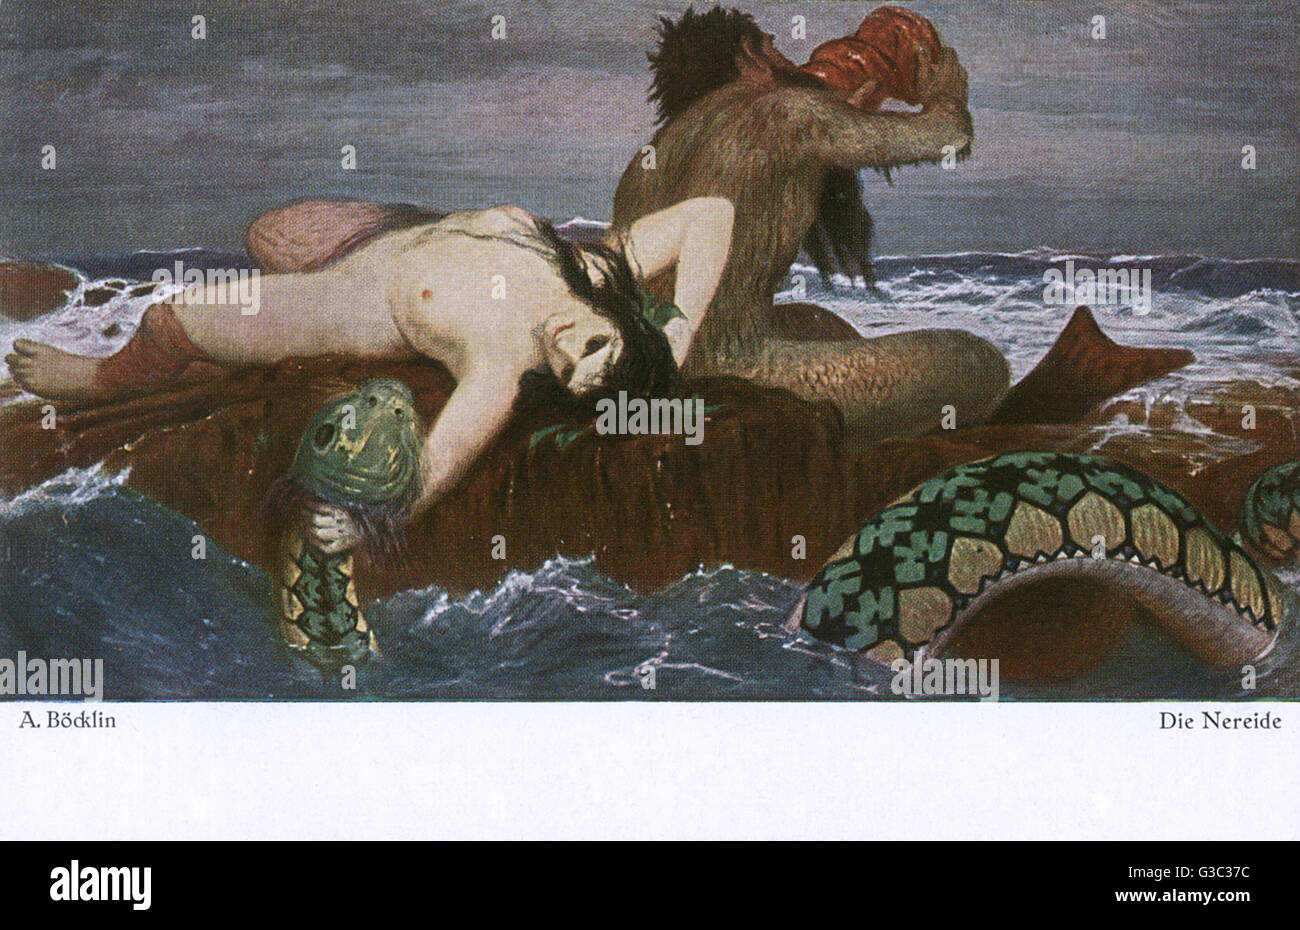 "Reproduction of a work by Arnold Bocklin (18271901) a Swiss symbolist painter, entitled ""Triton and Nereid"". - Stock Image"